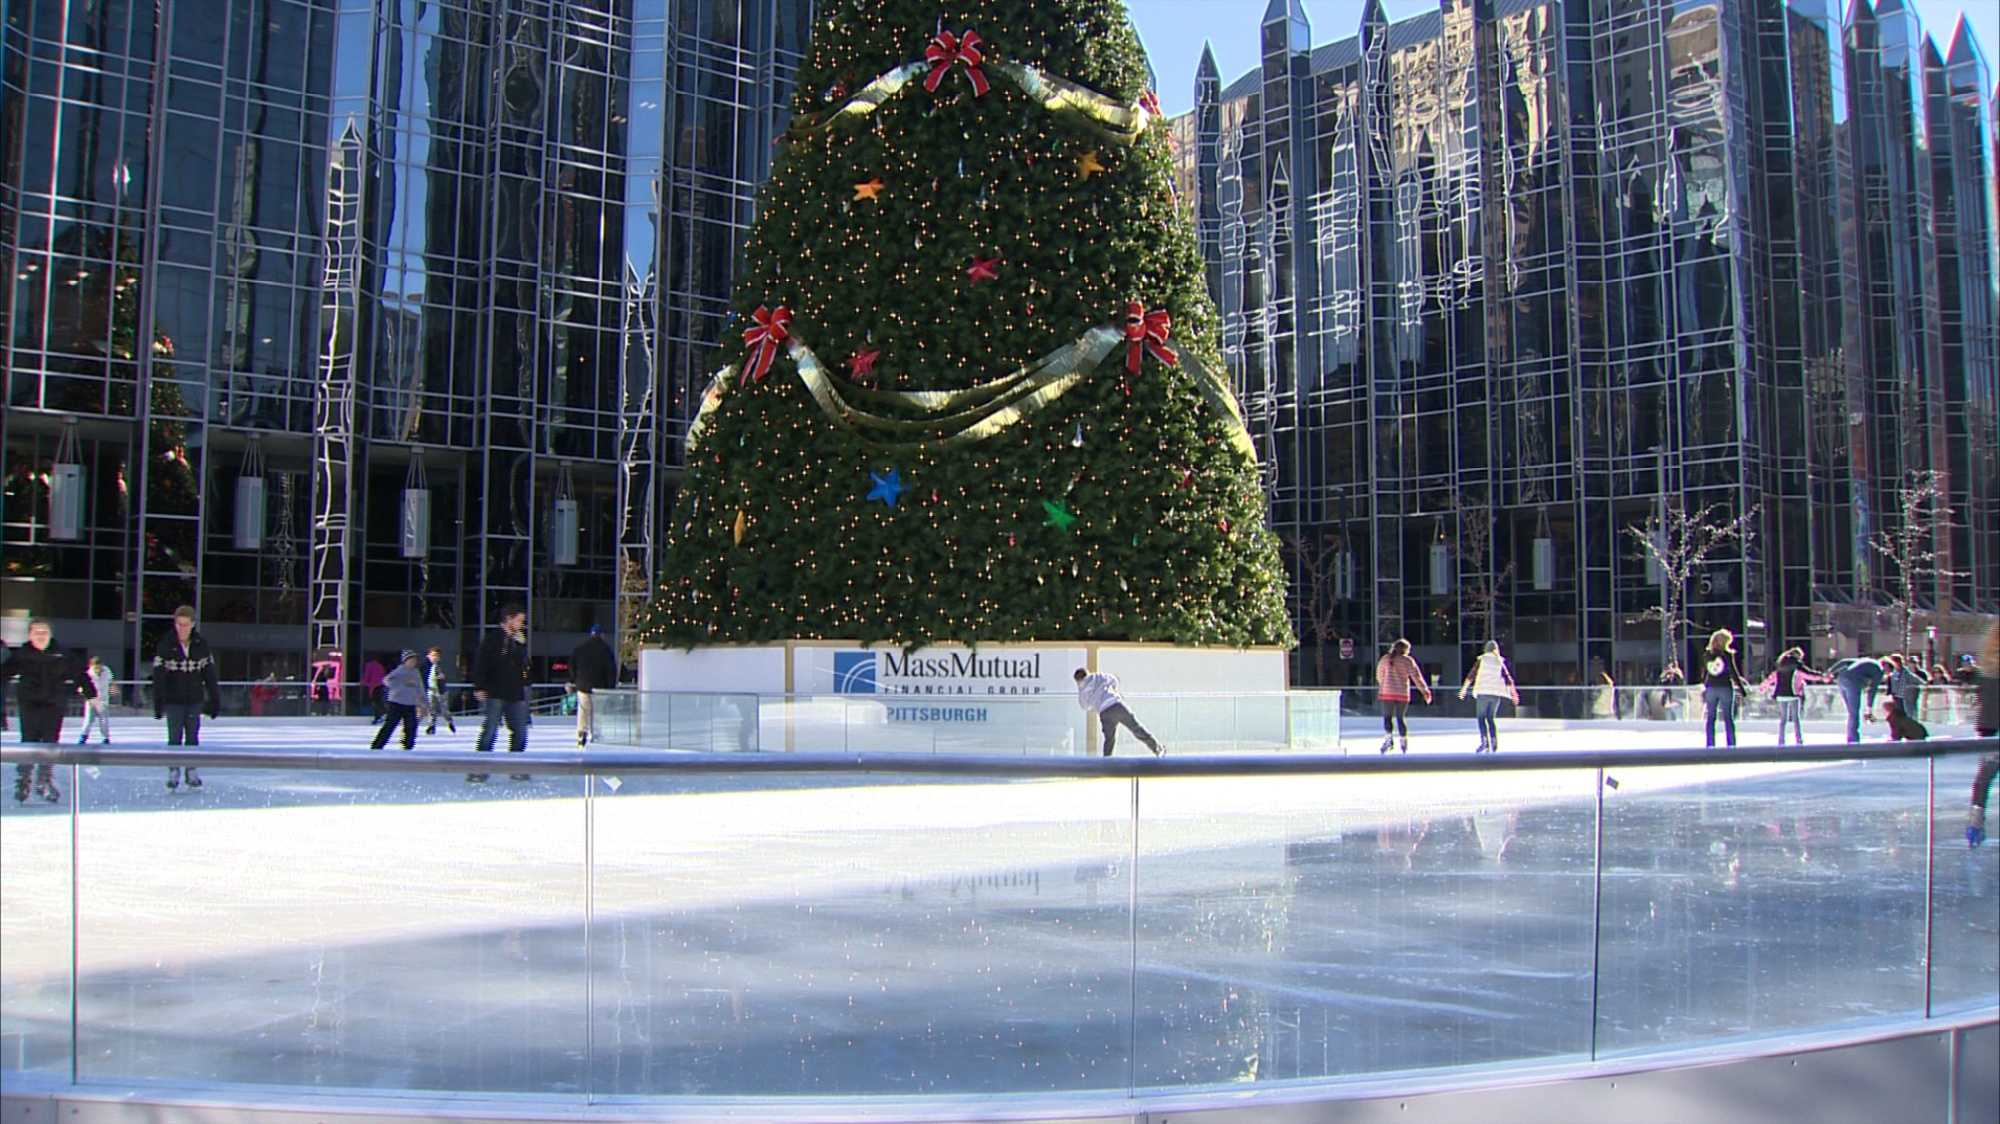 The MassMutual Pittsburgh Ice Rink at PPG Place is always a favorite spot for ice skating during the holiday season.